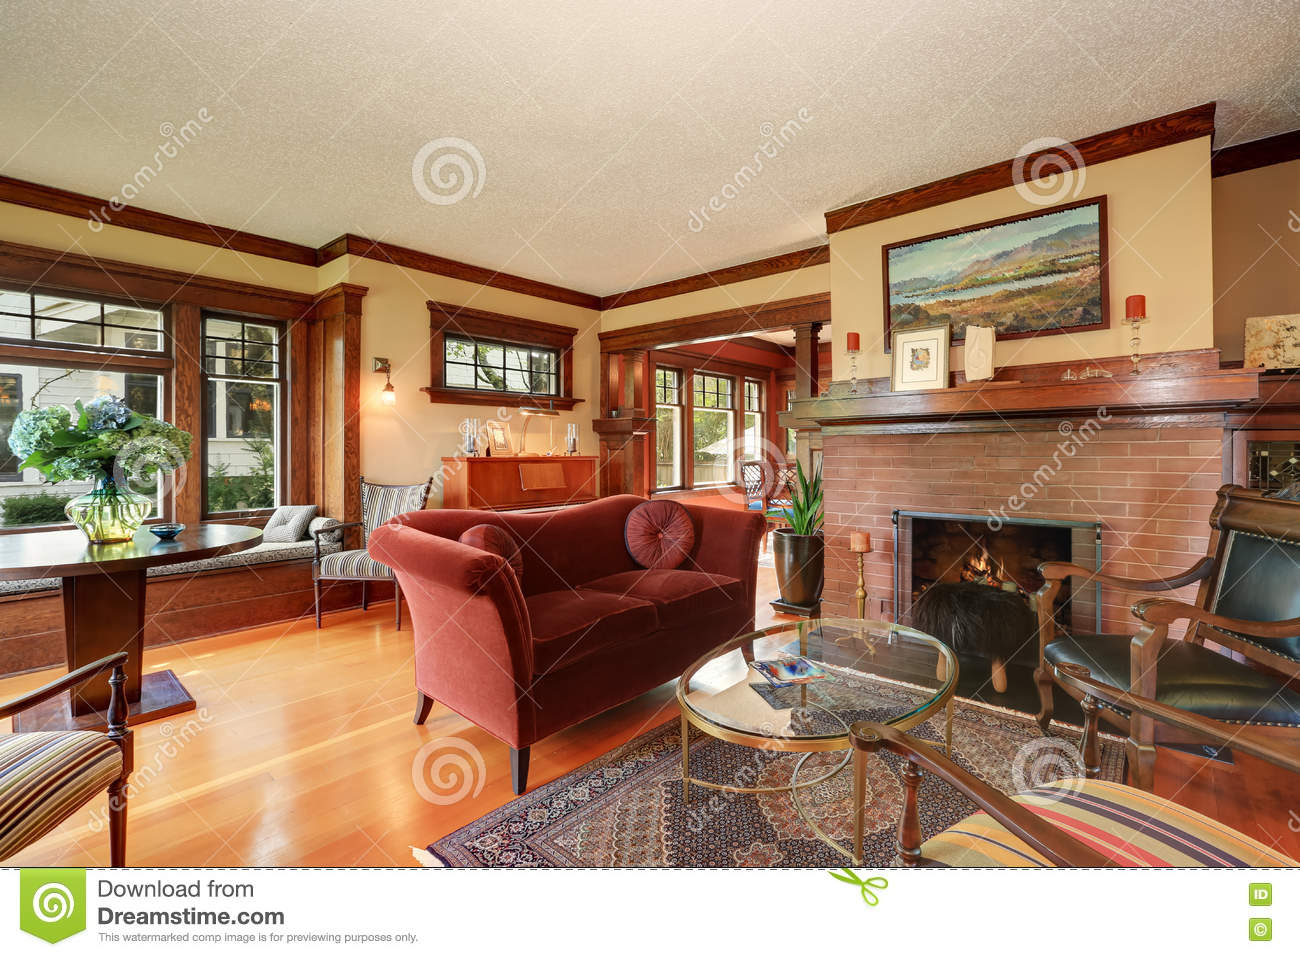 American classic living room interior design stock image for Interior design usa